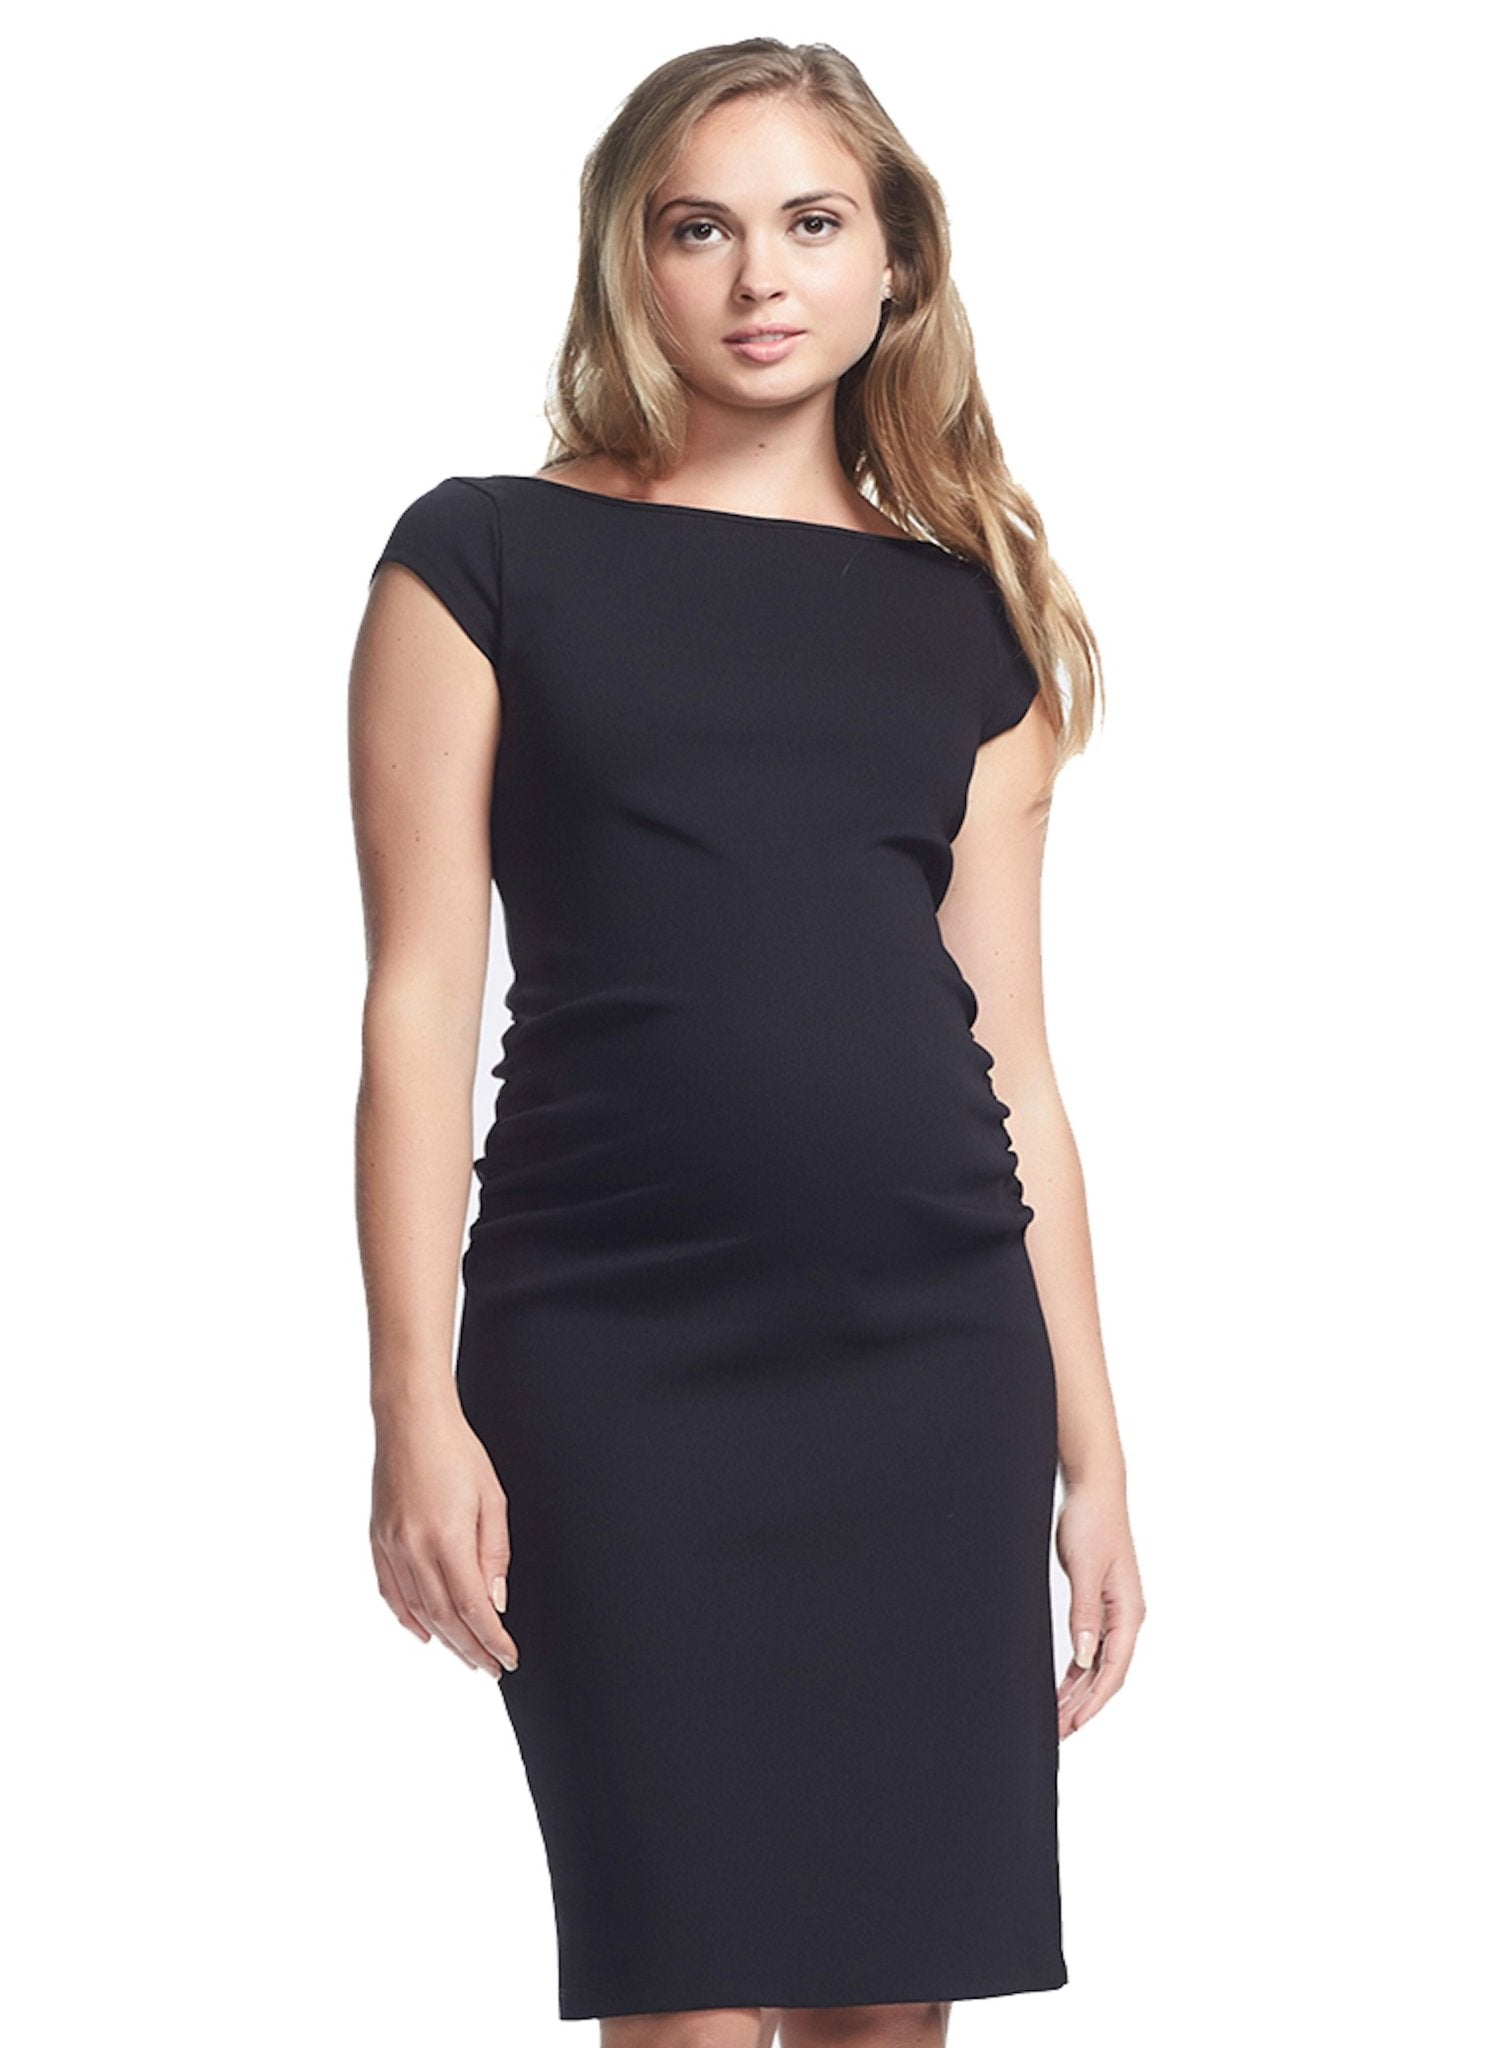 Leo Cap Sleeve Maternity Dress - Mums and Bumps